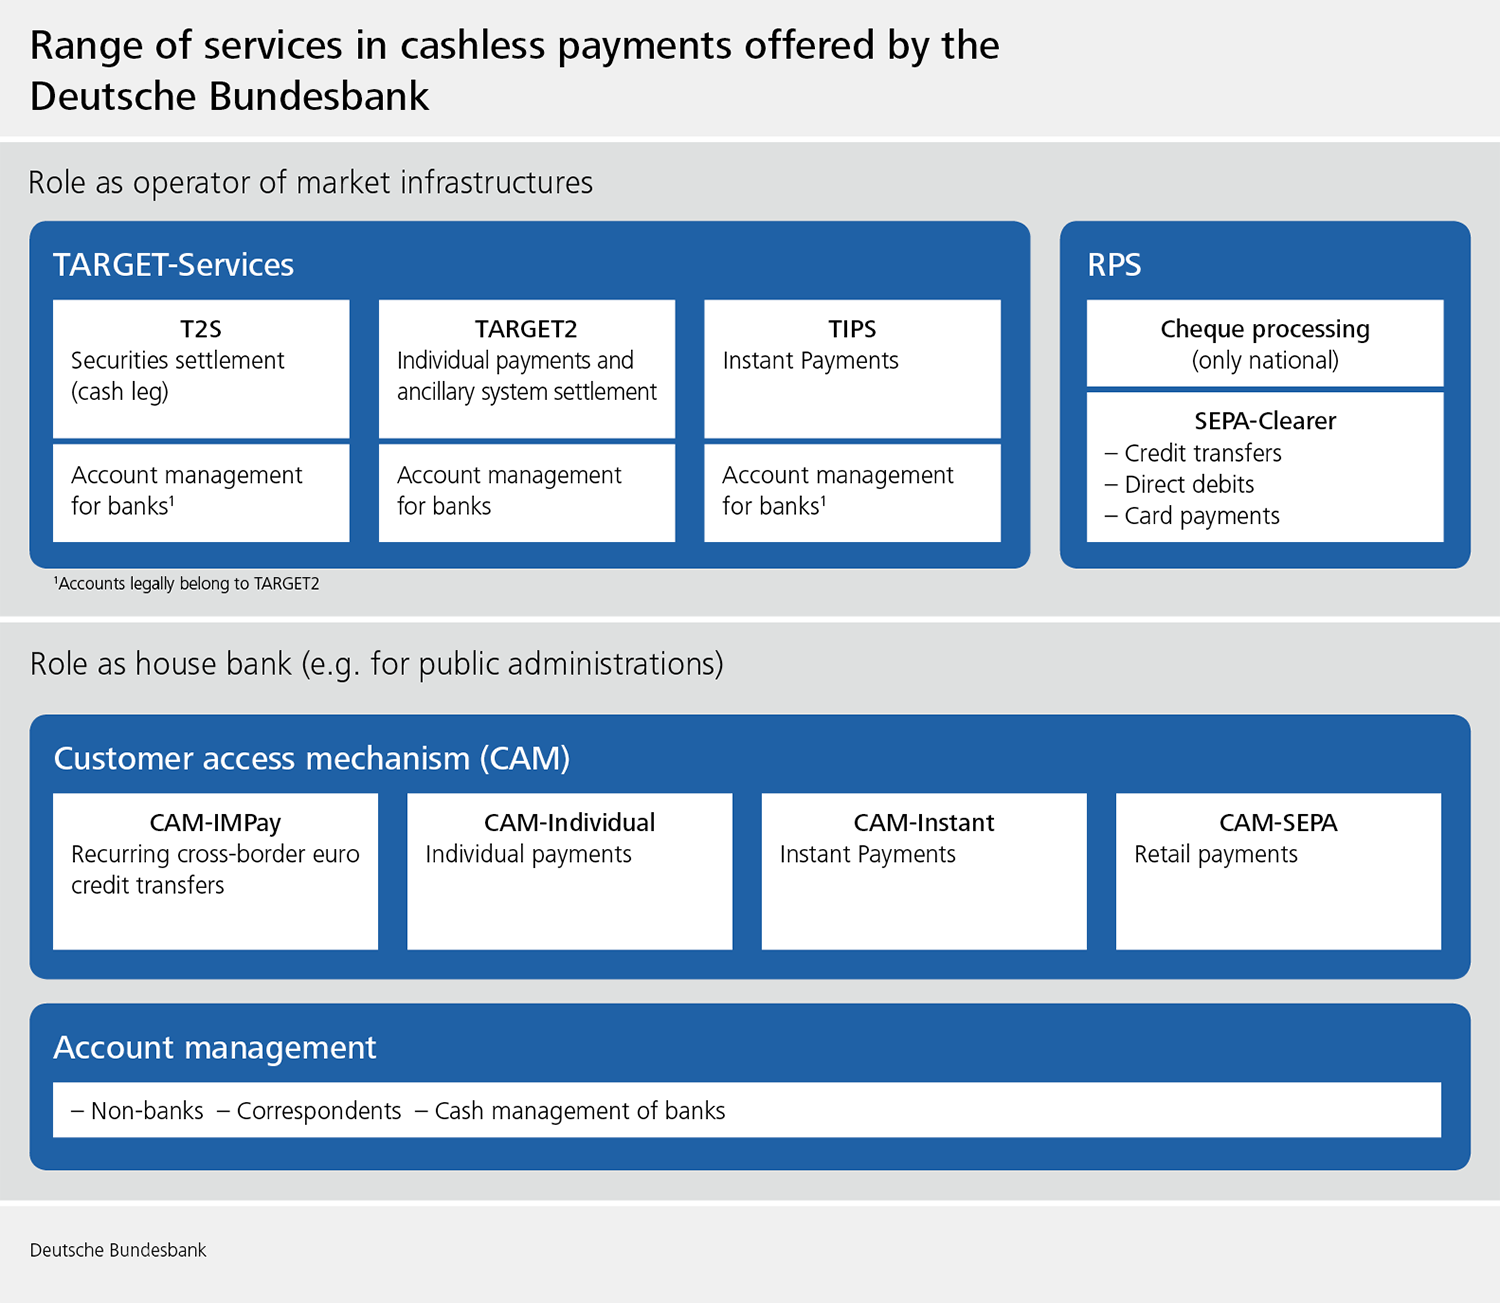 Overview of services offered by the Deutsche Bundesbank in the area of cashless payments.